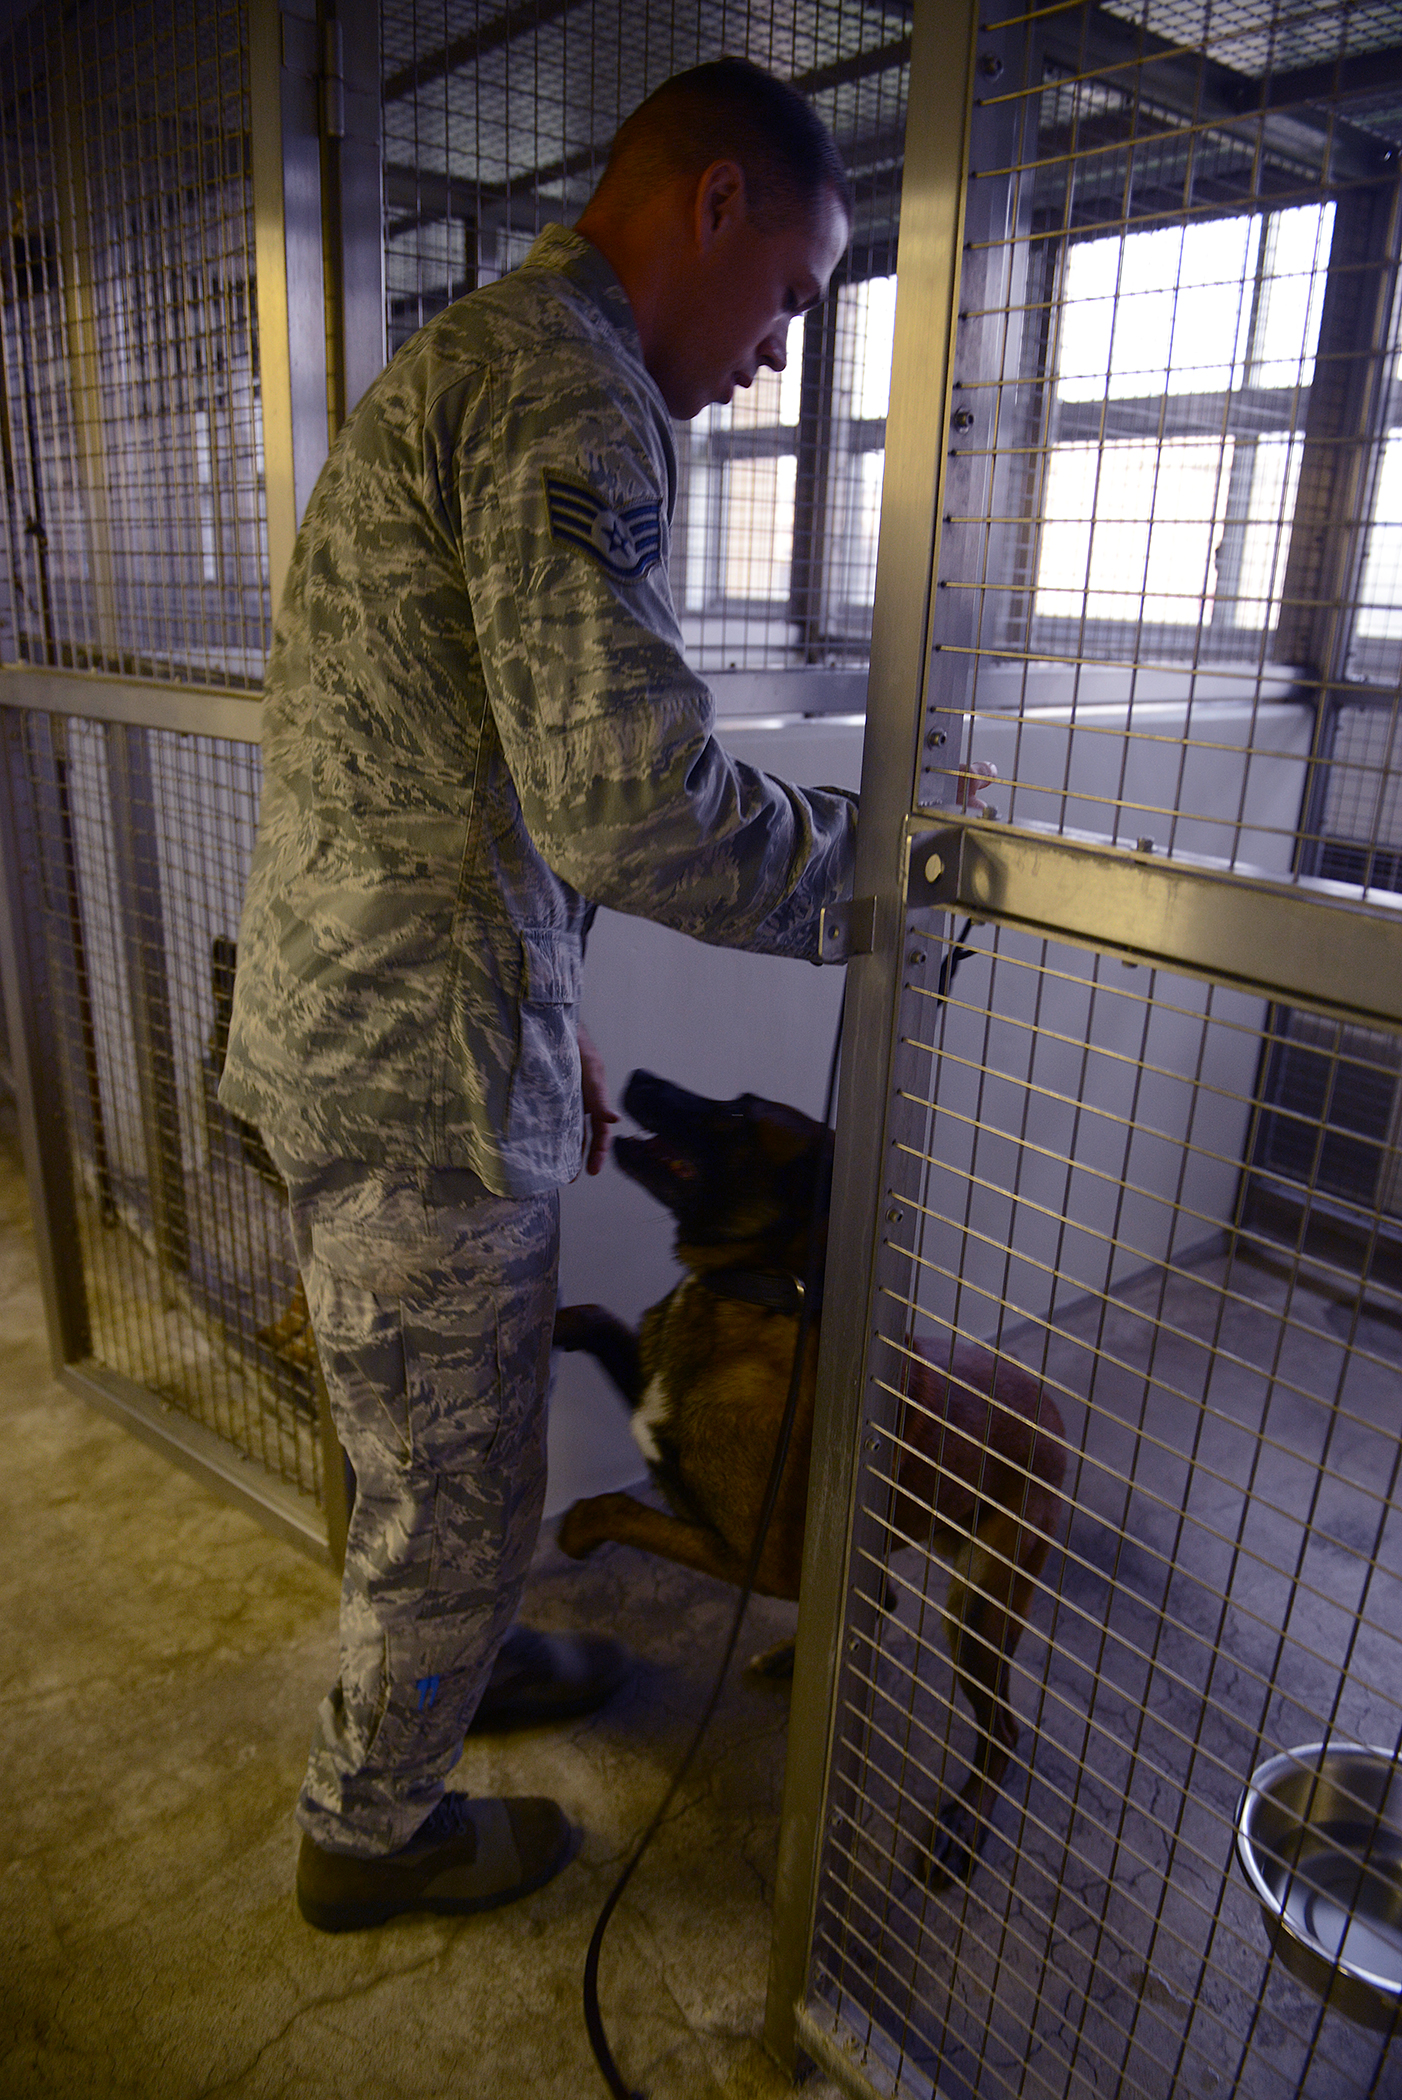 Staff Sgt. Nicholas Galbraith, 374th Security Forces Squadron military working dog handler, begins his workday by greeting his partner, Topa, at Yokota Air Base, Japan, July 29, 2015. Handlers retrieve their canine partners before checking out his protective gear or attending guard mount each morning. (U.S. Air Force photo by Senior Airman David C. Danford/Released)